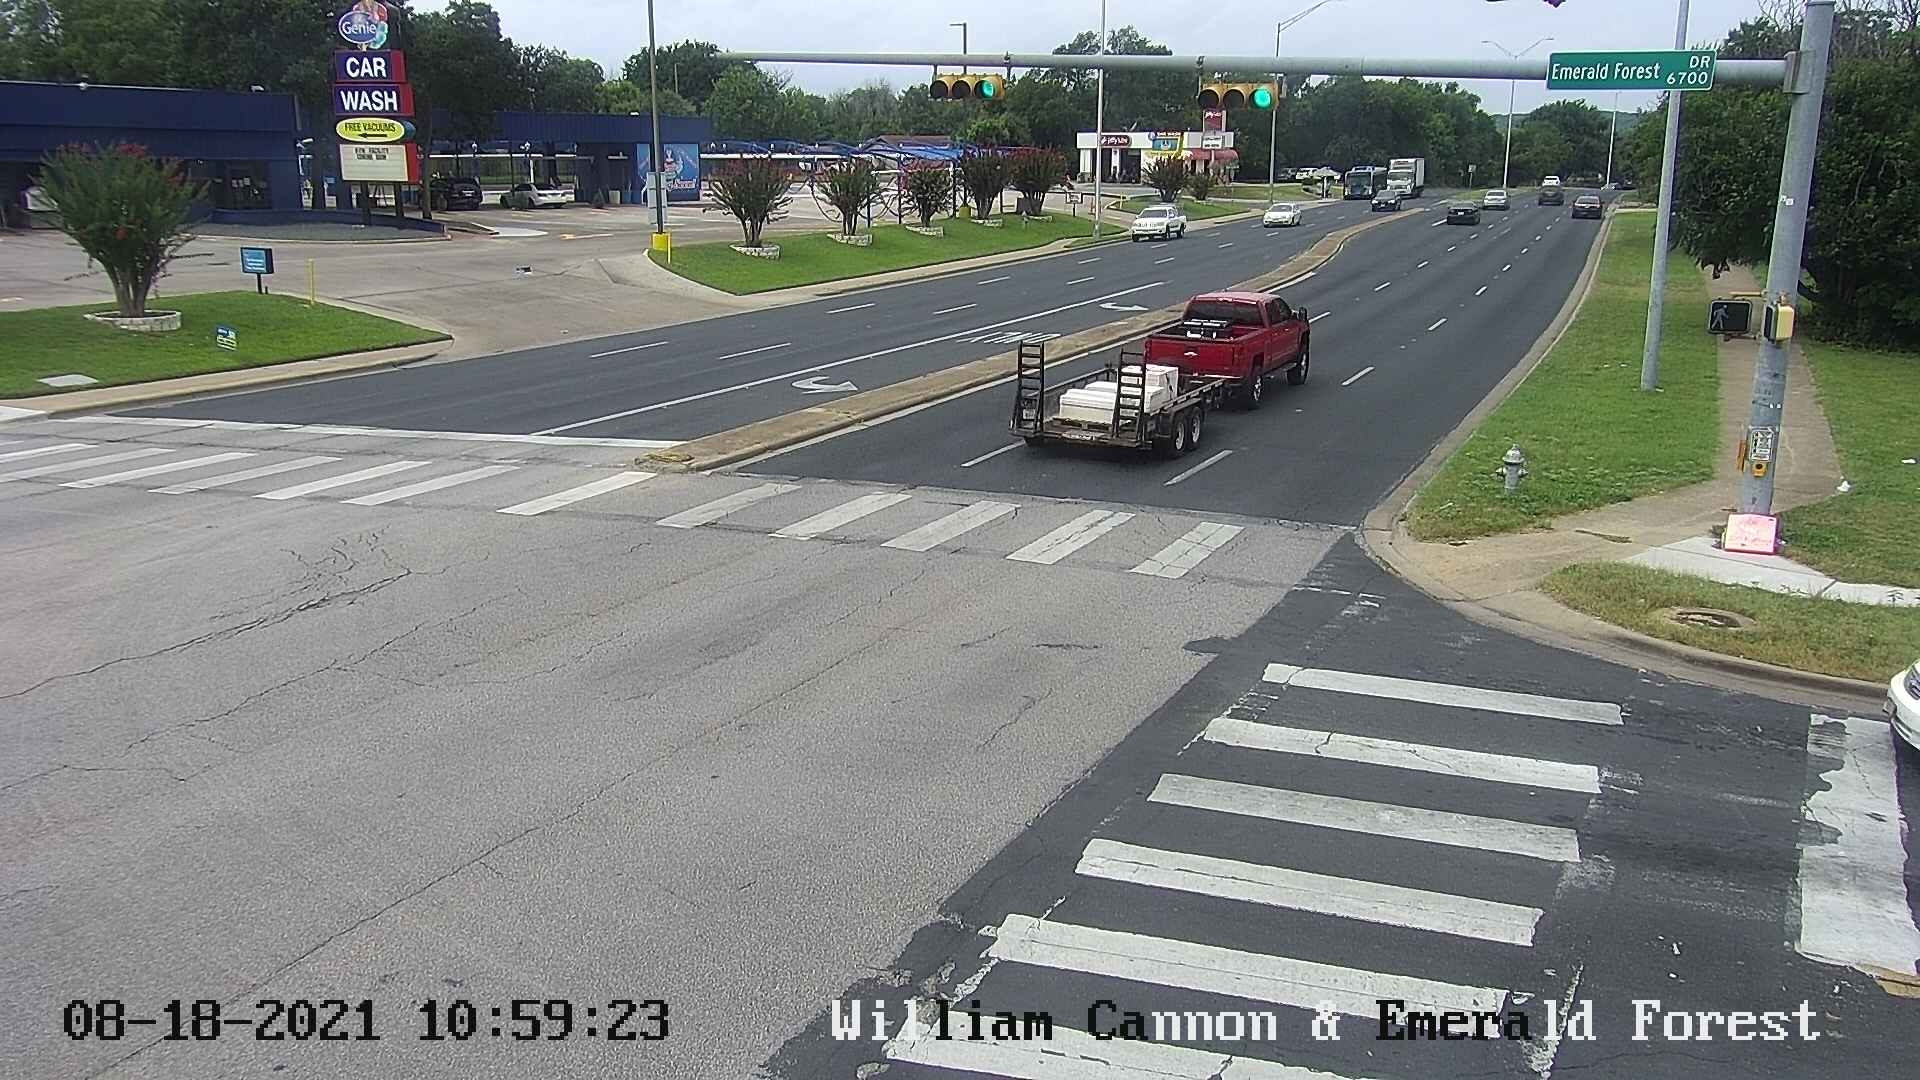 WILLIAM CANNON DR / EMERALD FOREST DR